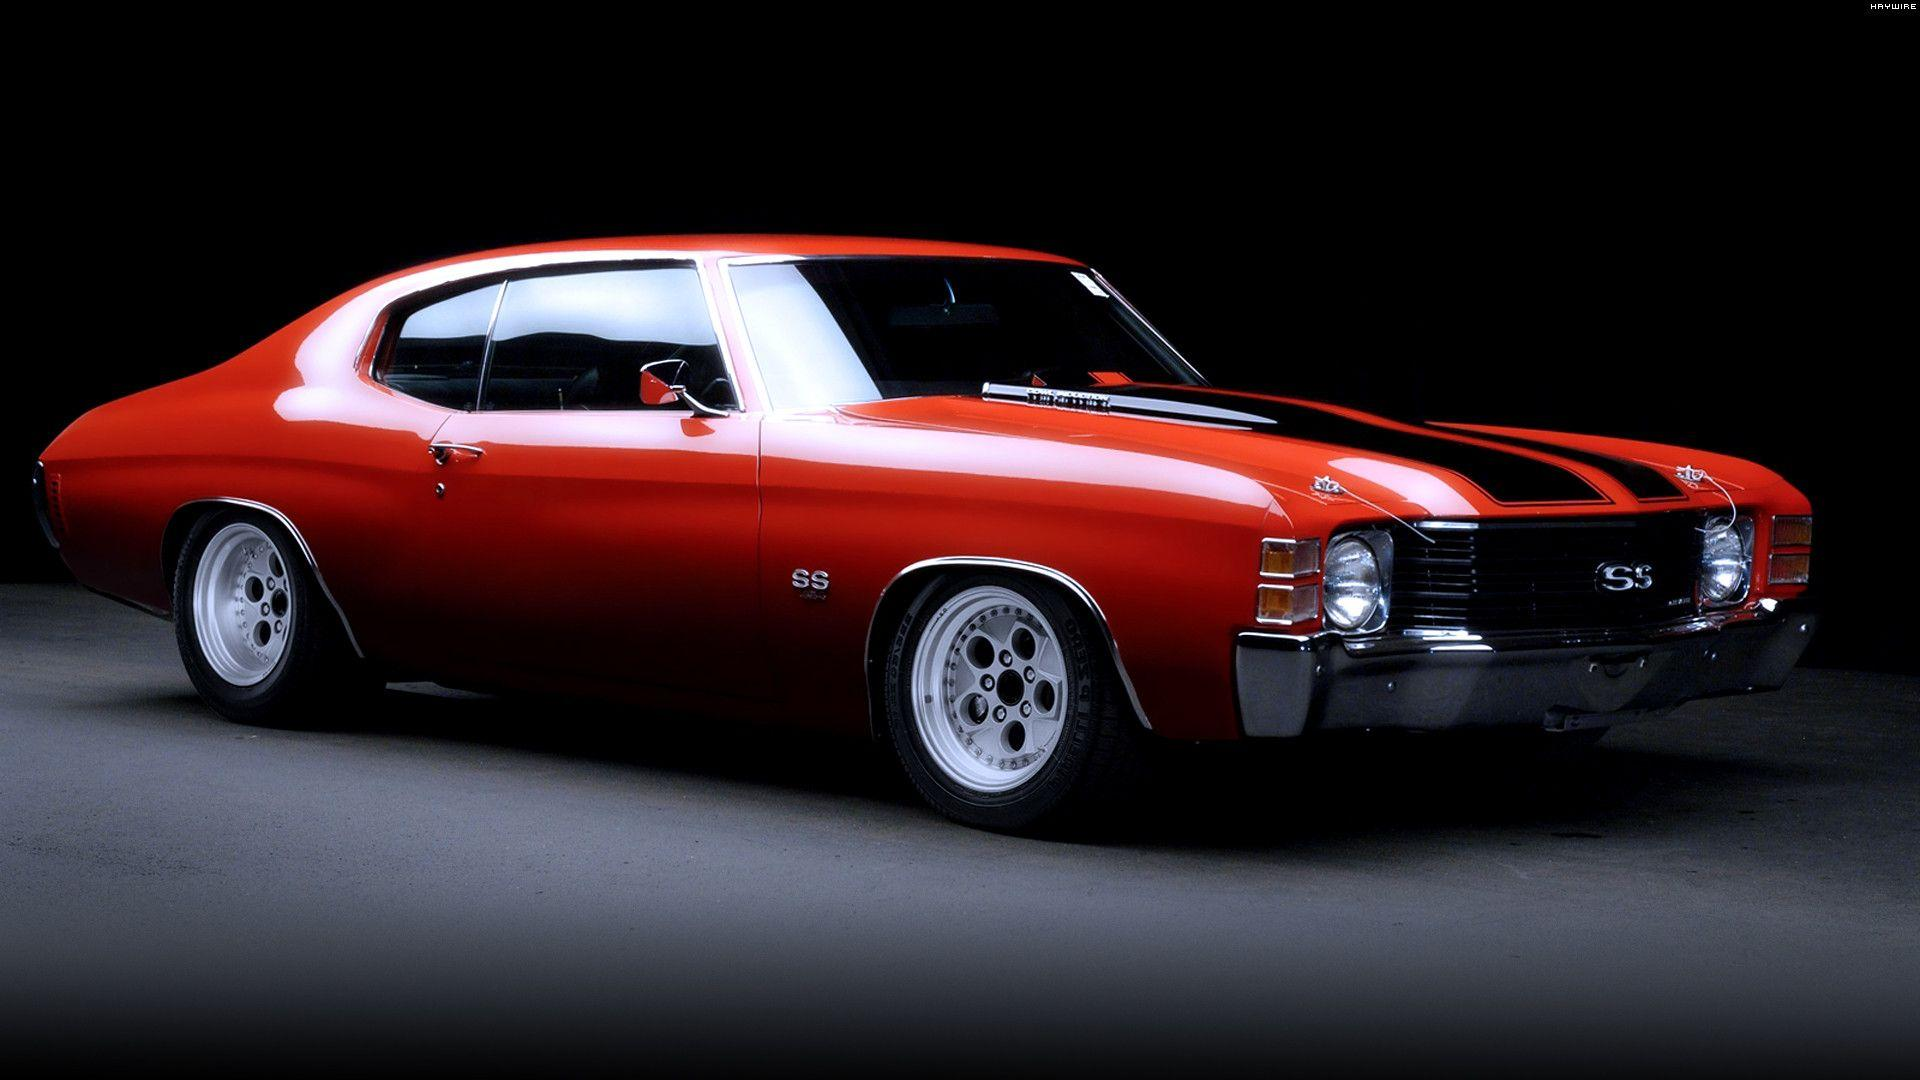 Chevelle Wallpapers - Wallpaper Cave